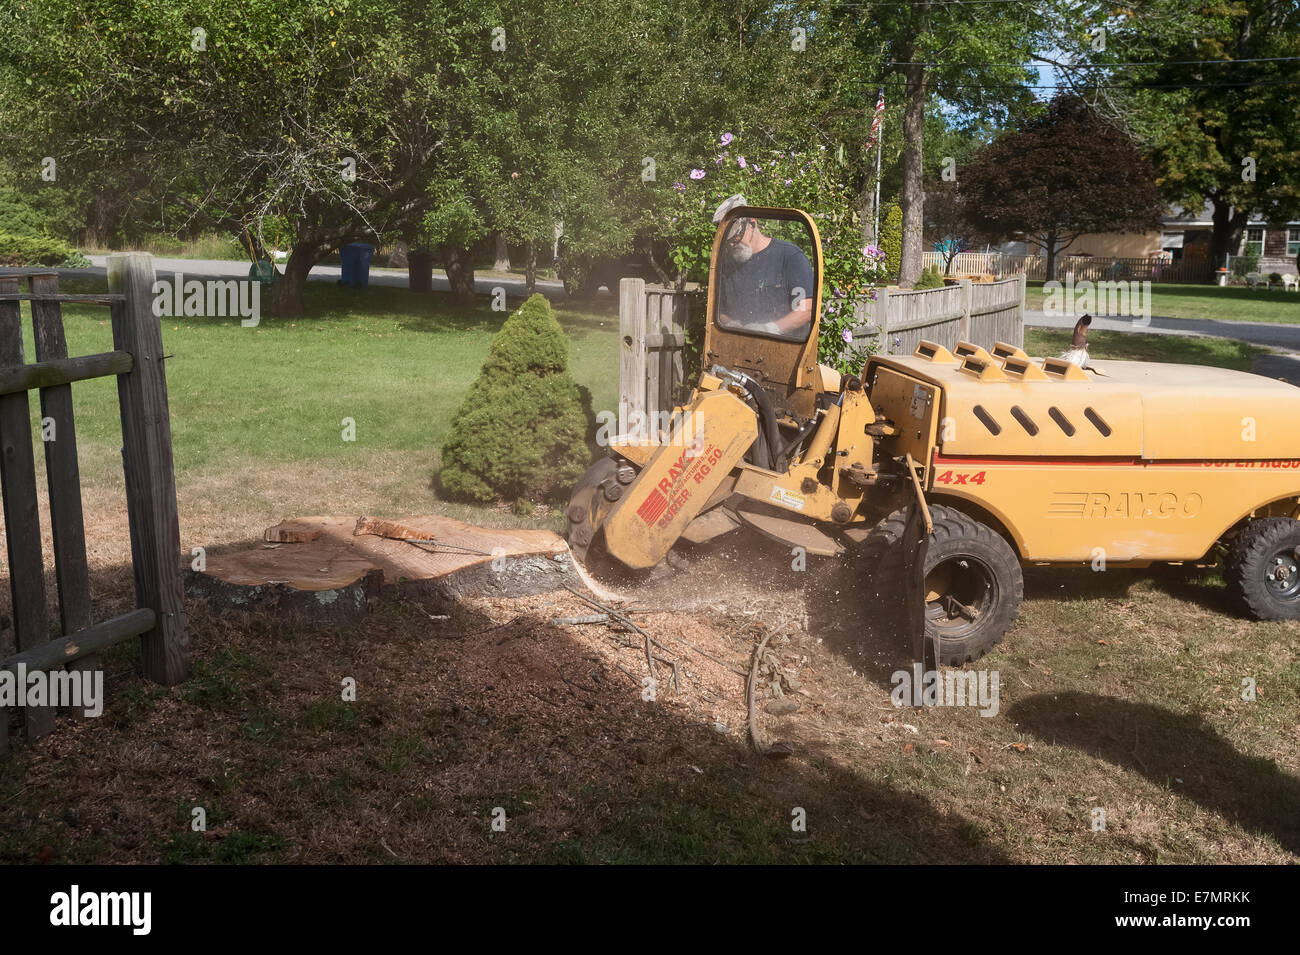 a man using a rayco model super rg50 4x4 stump grinder to remove a rh alamy com Used Rayco RG 50 Tree Stump Grinder Rayco